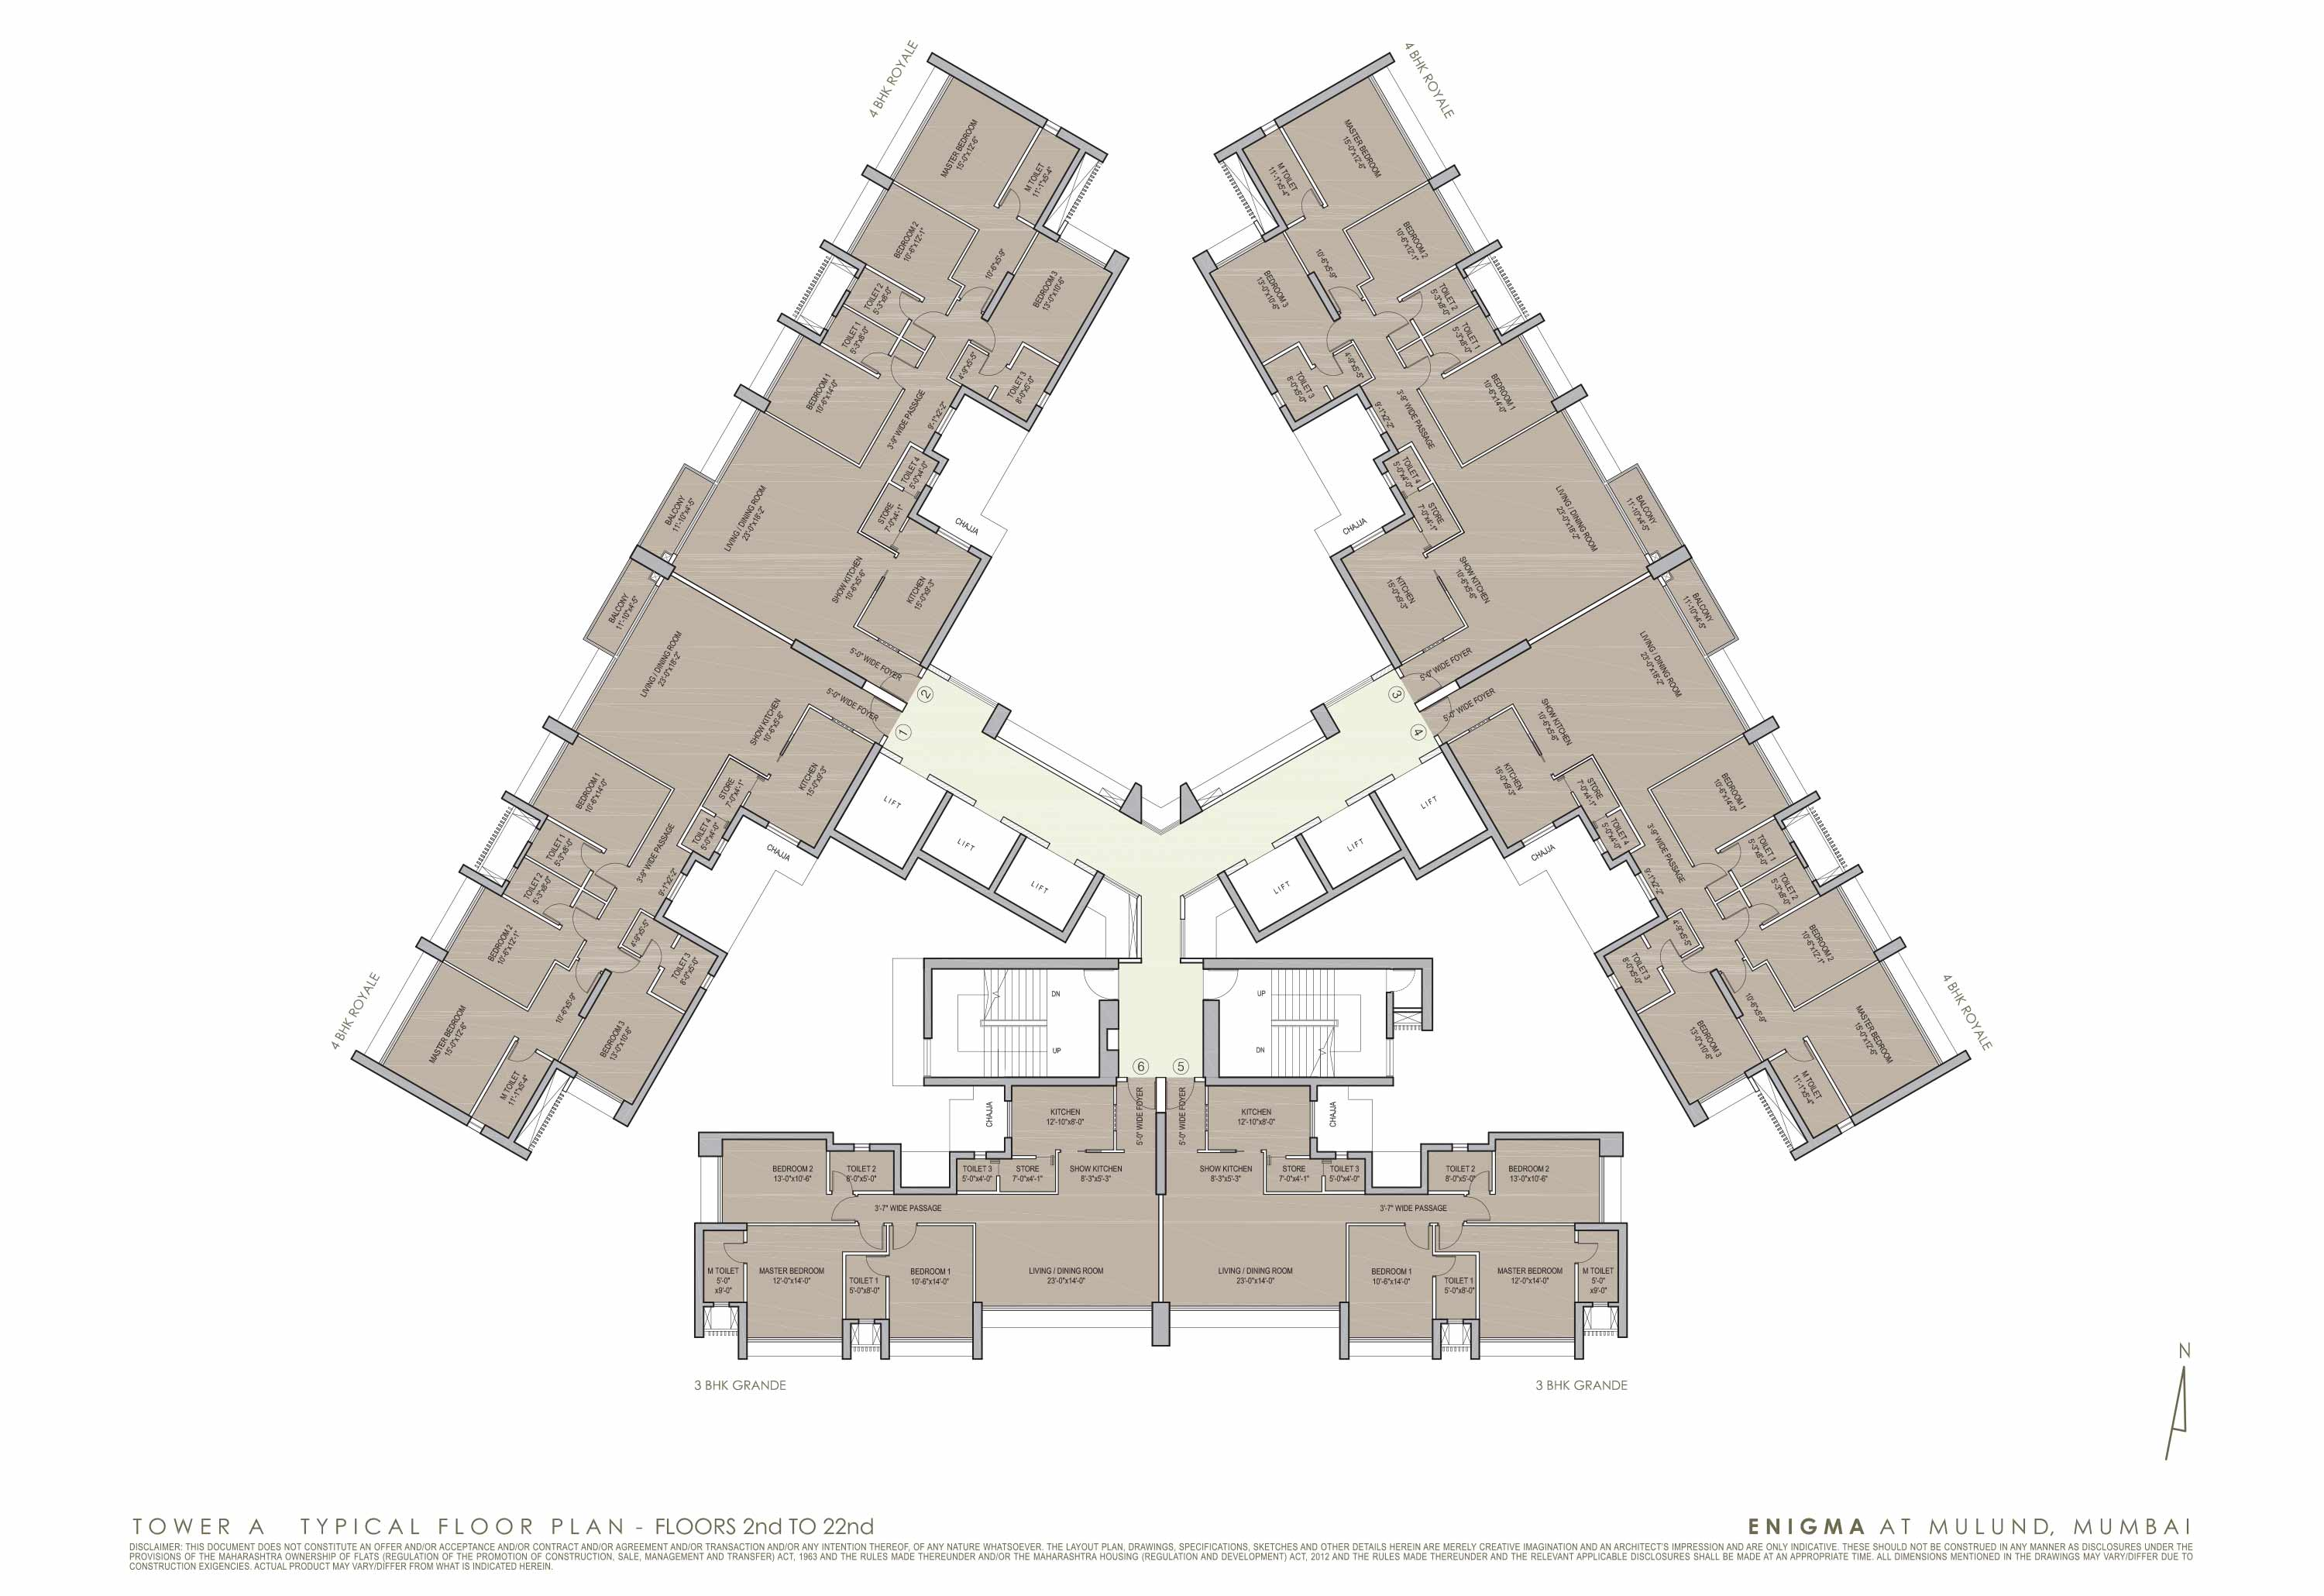 3 Bhk 4 Apartments In Mulund West Eternia And Enigma The Floor Plan At Right Is Only Part Of An Ongoing Electrical Project Luxury Flat Lbs Road W Floorplan 1